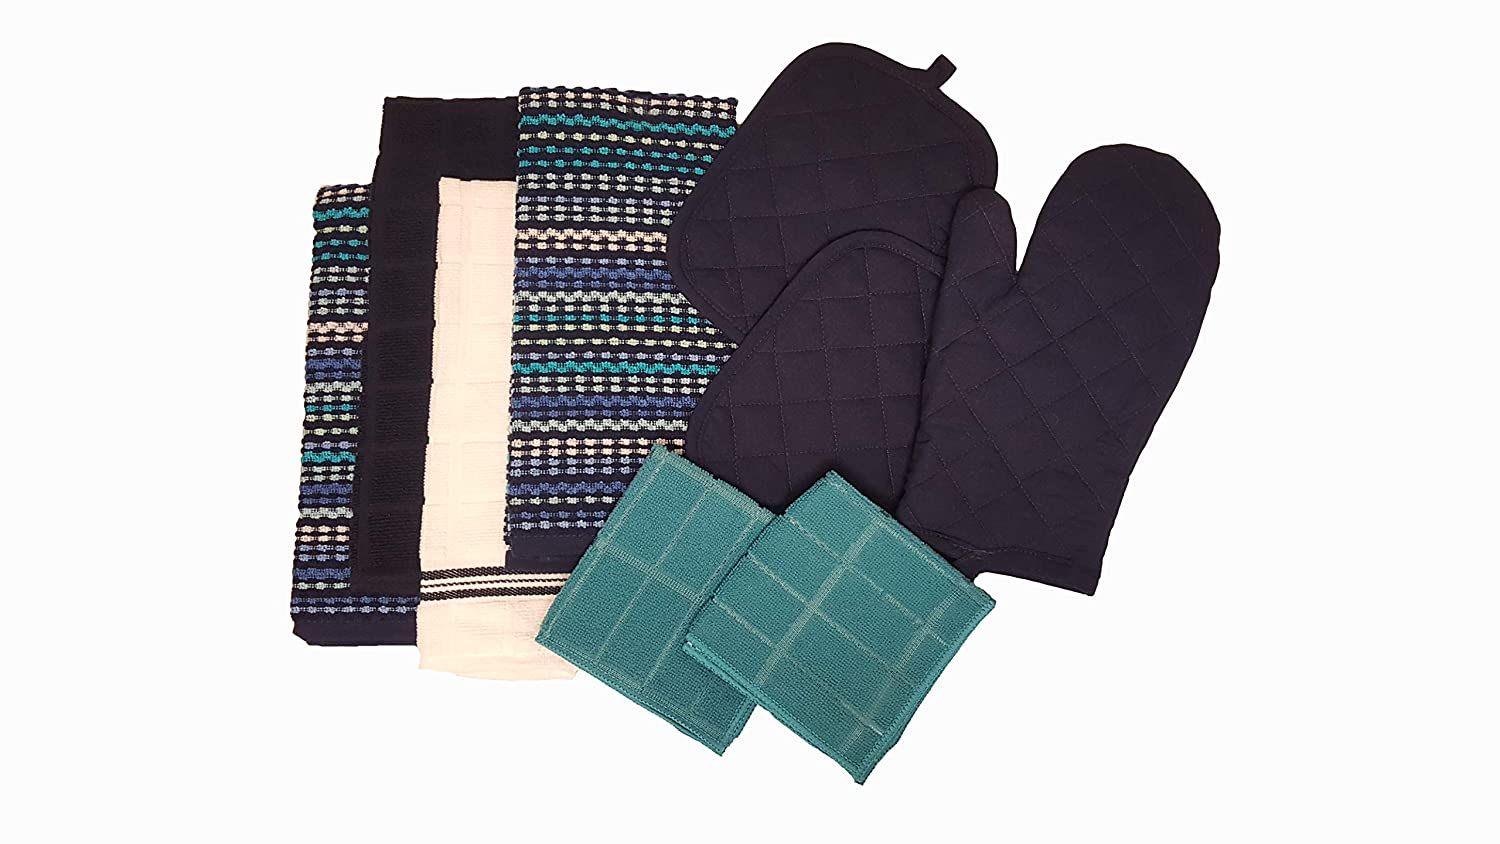 Lori T's Gifts and More Mainstays Kitchen 9 Piece Set 2 Pot Holders, 1 Oven Mitt, 1 White 1 Navy 2 Multi-Color Towels, 2 HC Dishcloths (Navy)